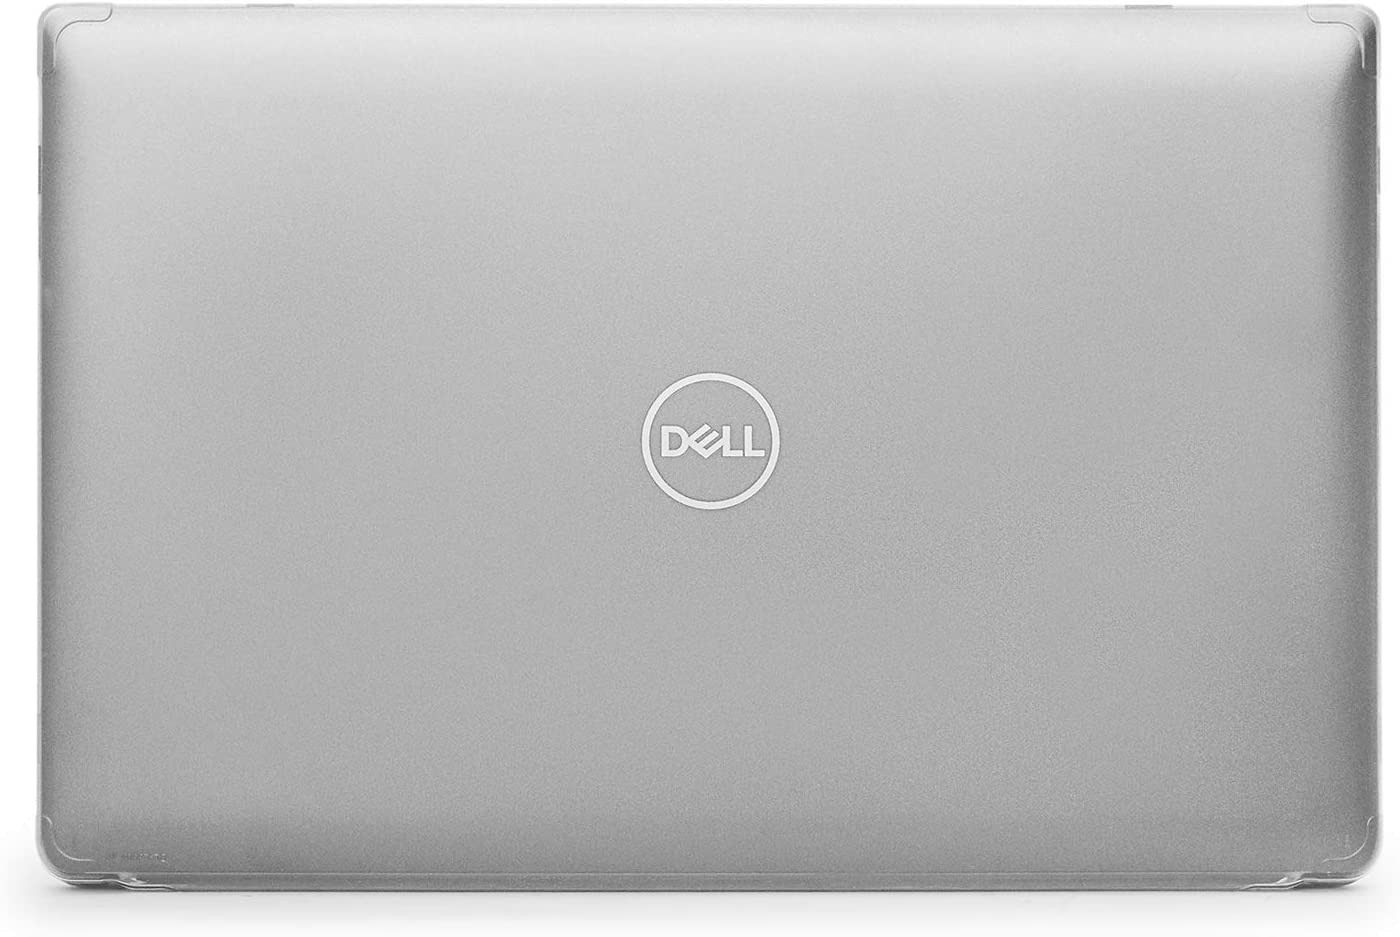 "mCover Hard Shell Case for 2019 13.3"" Dell Latitude 13 3301 Business Series Laptop Computers Released After May 2019 (Clear)"